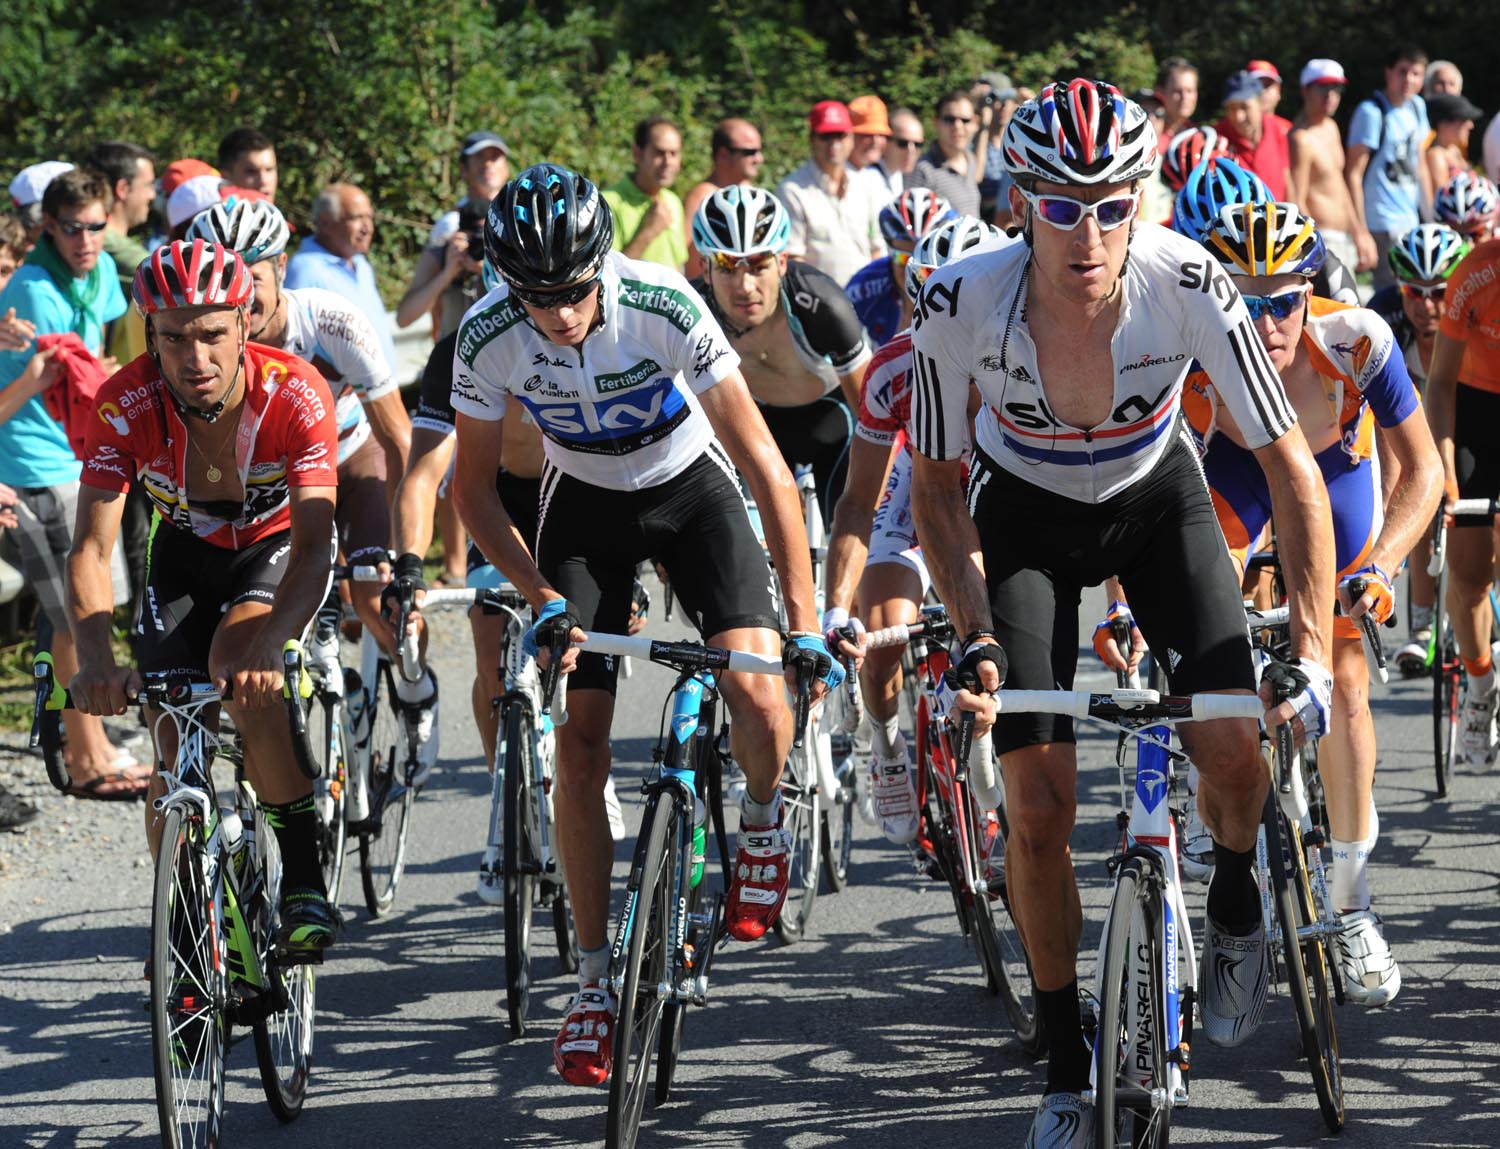 Bradley Wiggins leads Chris Froome, Vuelta a Espana 2011, stage 19